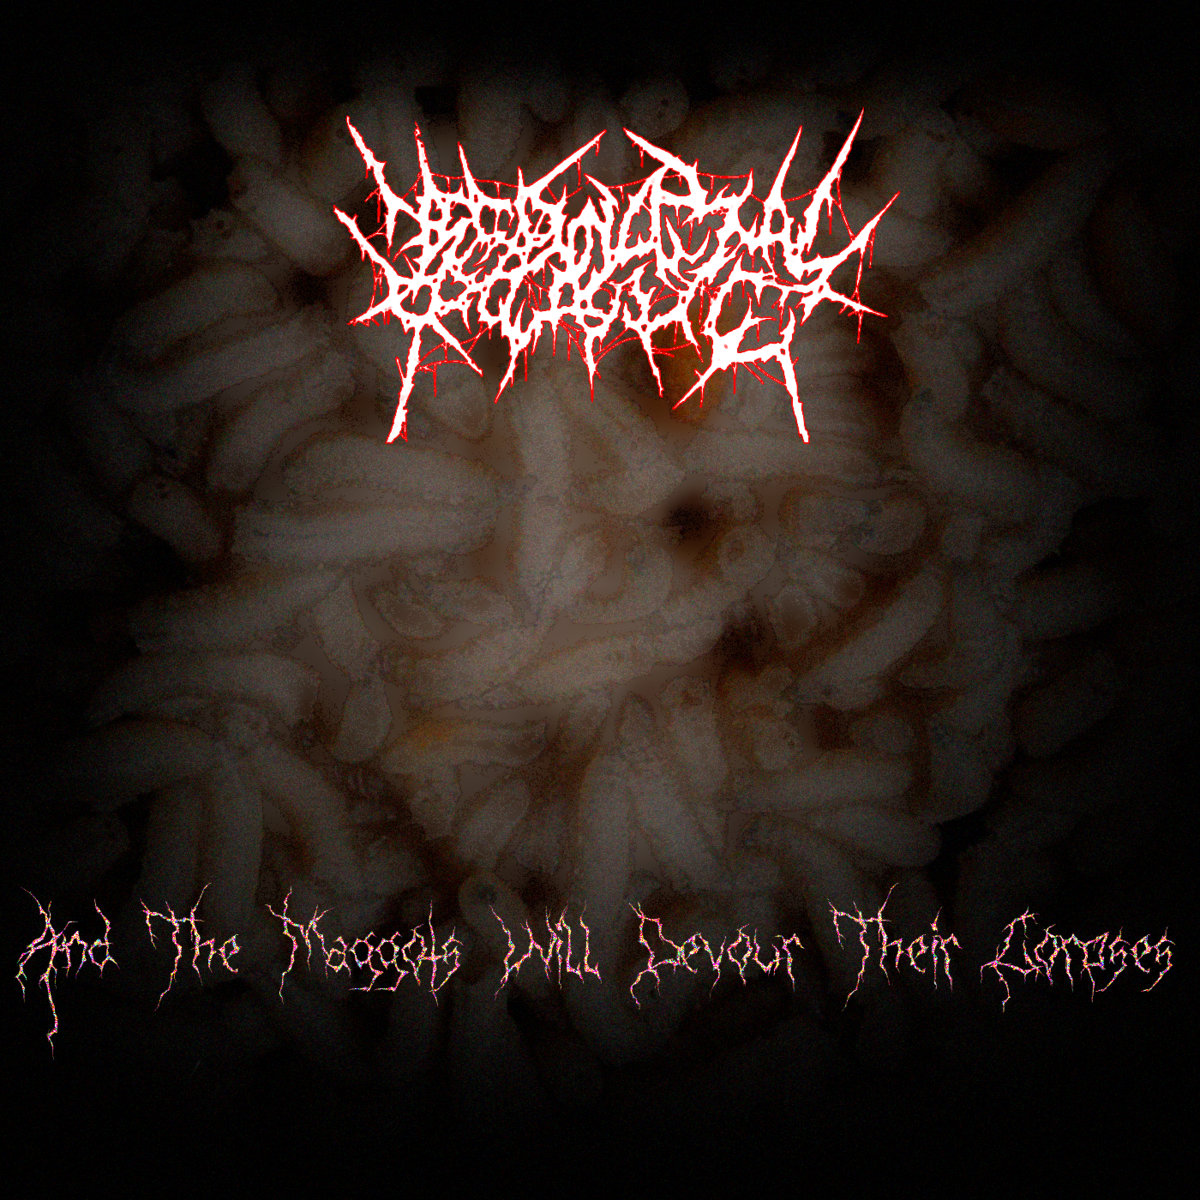 https://necrovaginalprolapsing.bandcamp.com/album/and-the-maggots-will-devour-their-corpses